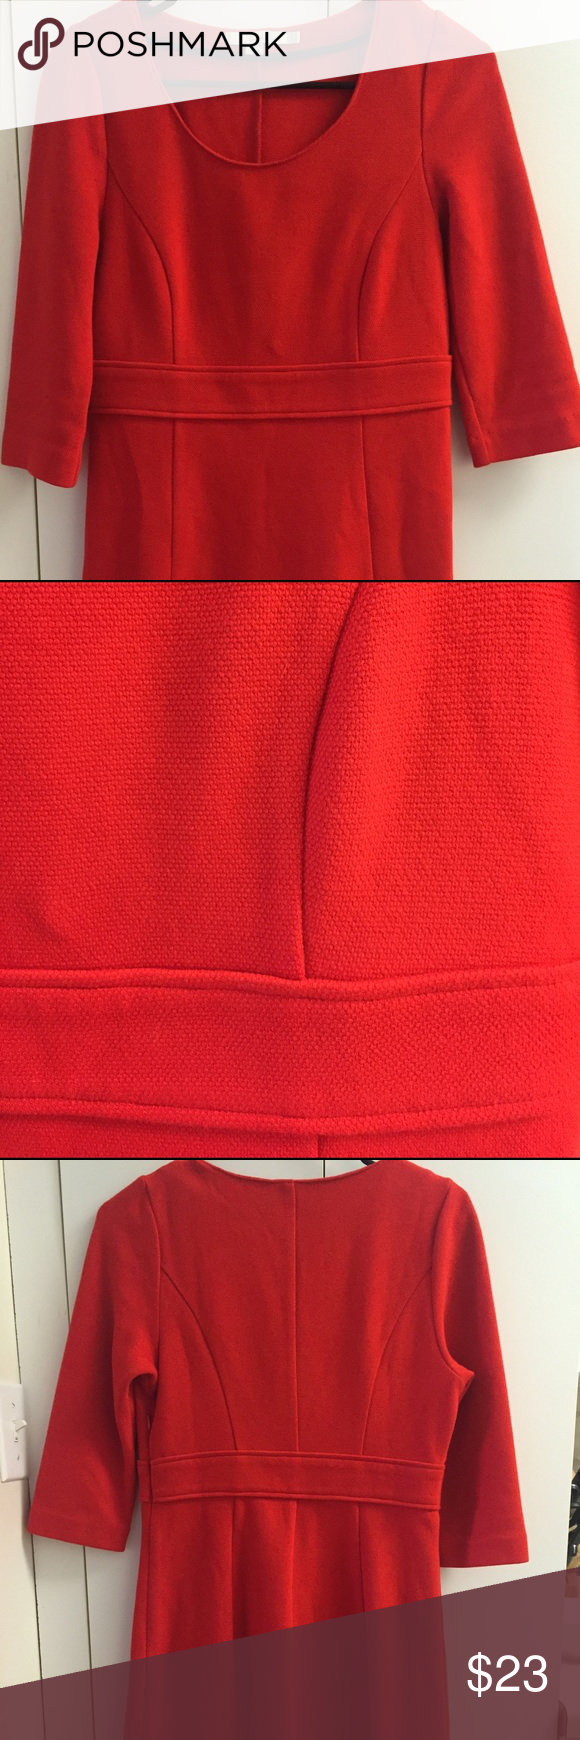 Red-Orange Boden Knit Shift Dress A great wardrobe classic - heavy knit with great weave. A-line waist. Color is a red orange - nice for multi season wear. More fitting shift-style dress. Boden sizes can vary - this dress would be a good fit for someone with a size 4 or 6 dress size. Boden Dresses